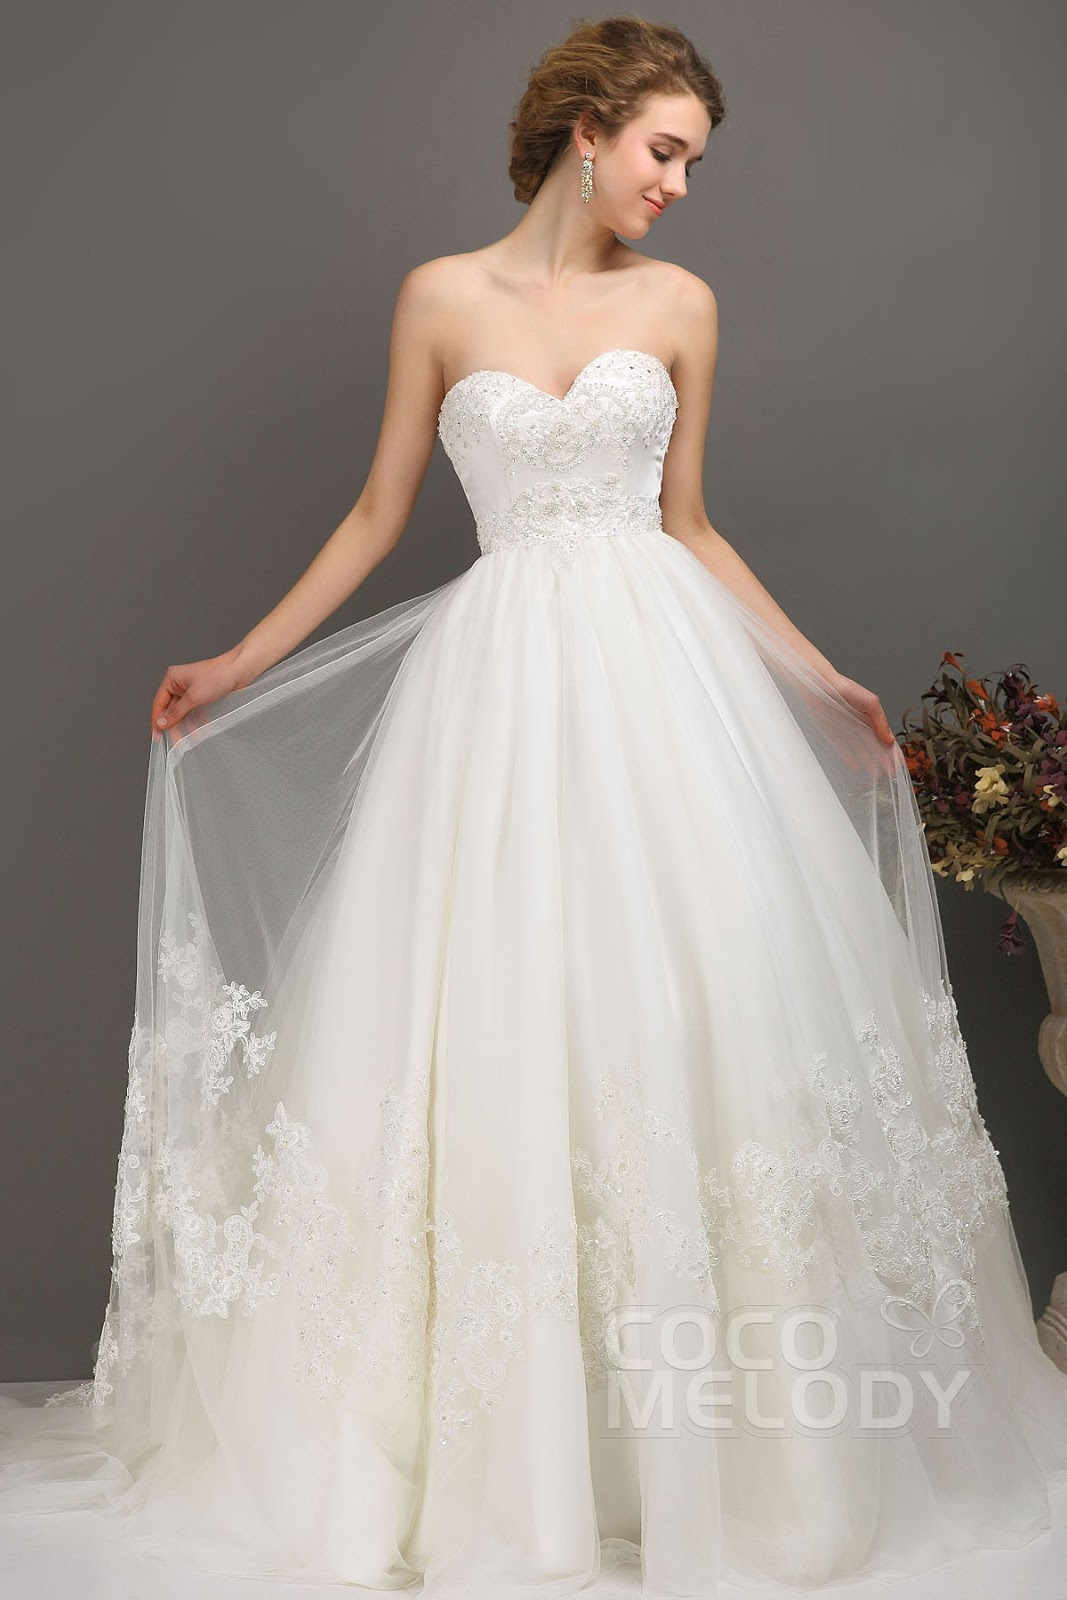 2013 the most beautiful wedding dress: On the autumn time of year ...